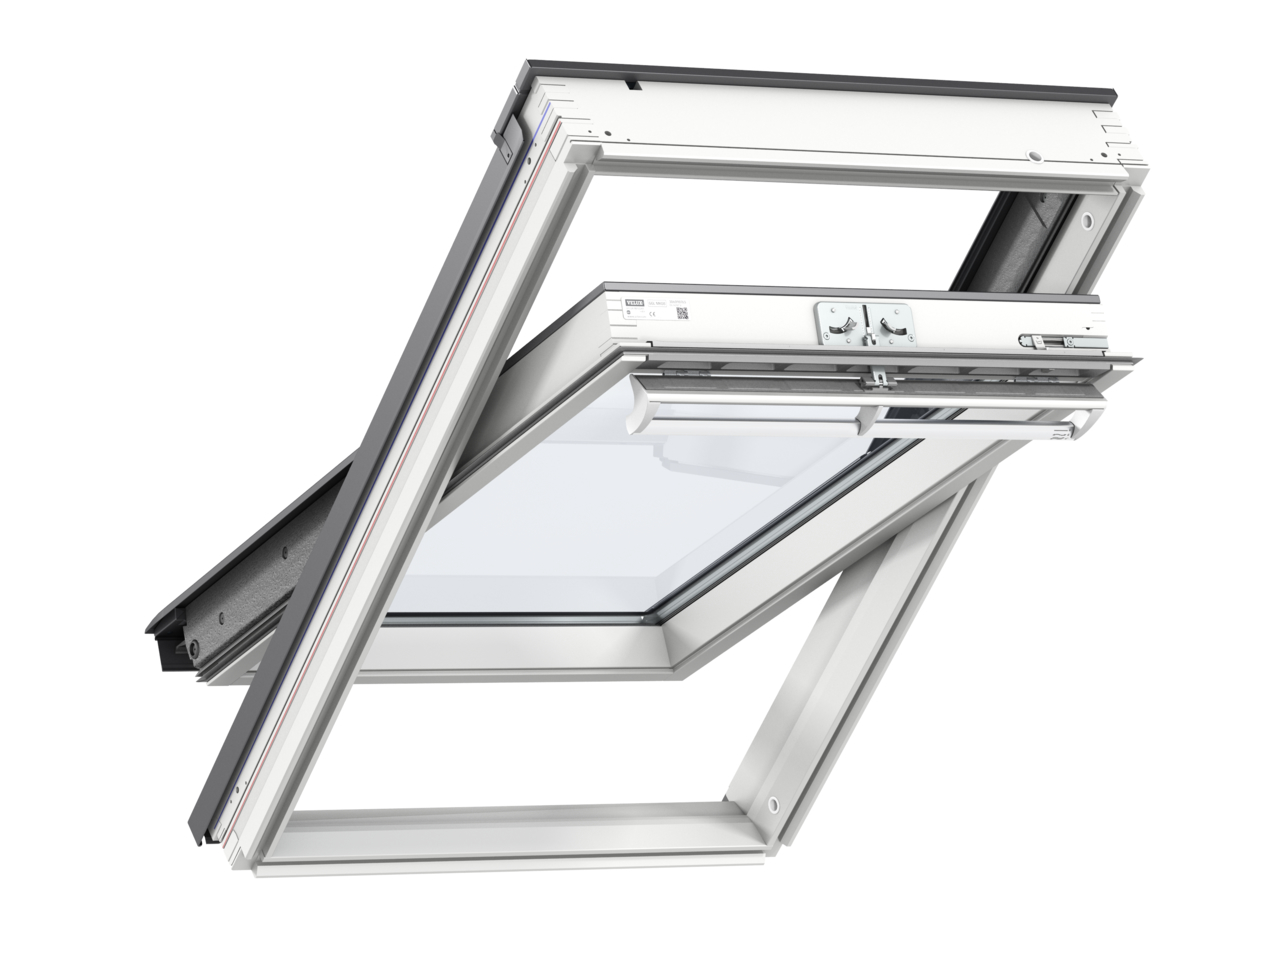 Velux GGL UK04 1340 x 980mm Centre Pivot Standard 70Pane Roof Window - White Painted